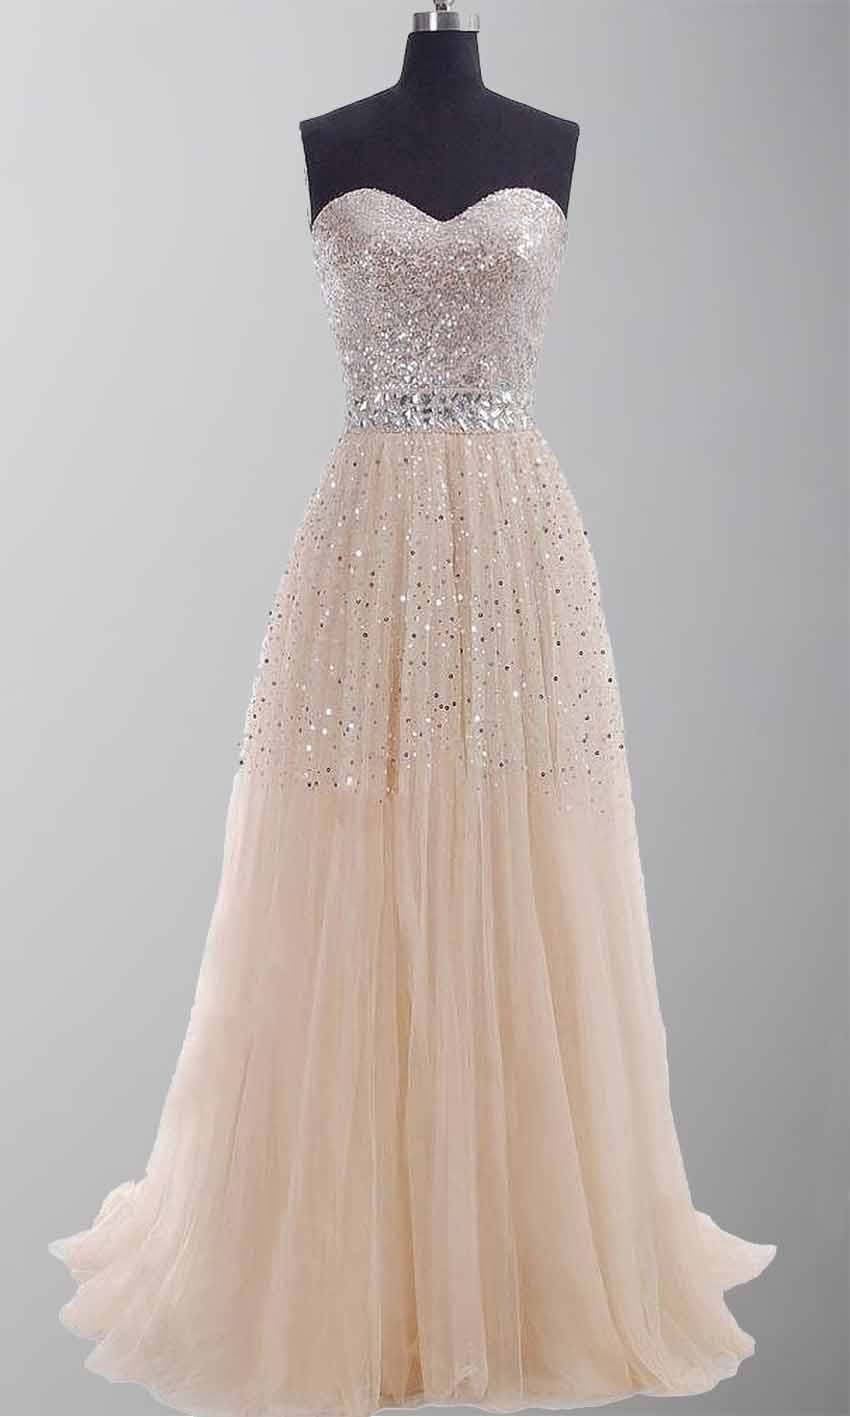 Champagne sequin sweetheart long prom gowns ksp254 ksp254 for Cheap champagne wedding dresses